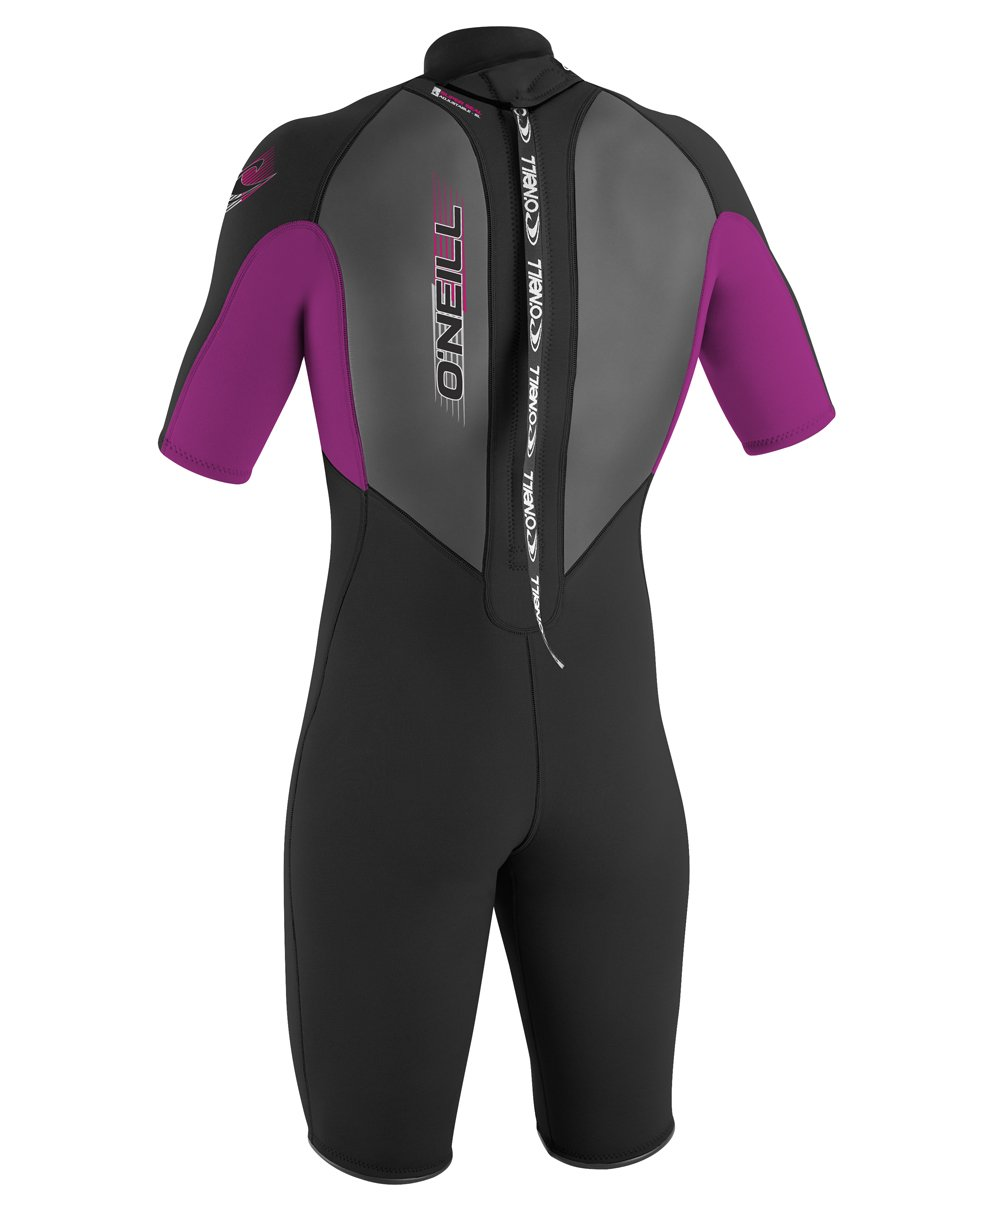 O'Neill Youth Reactor 2mm Back Zip Spring Wetsuit, Black/Pink/Black, 4 by O'Neill Wetsuits (Image #3)